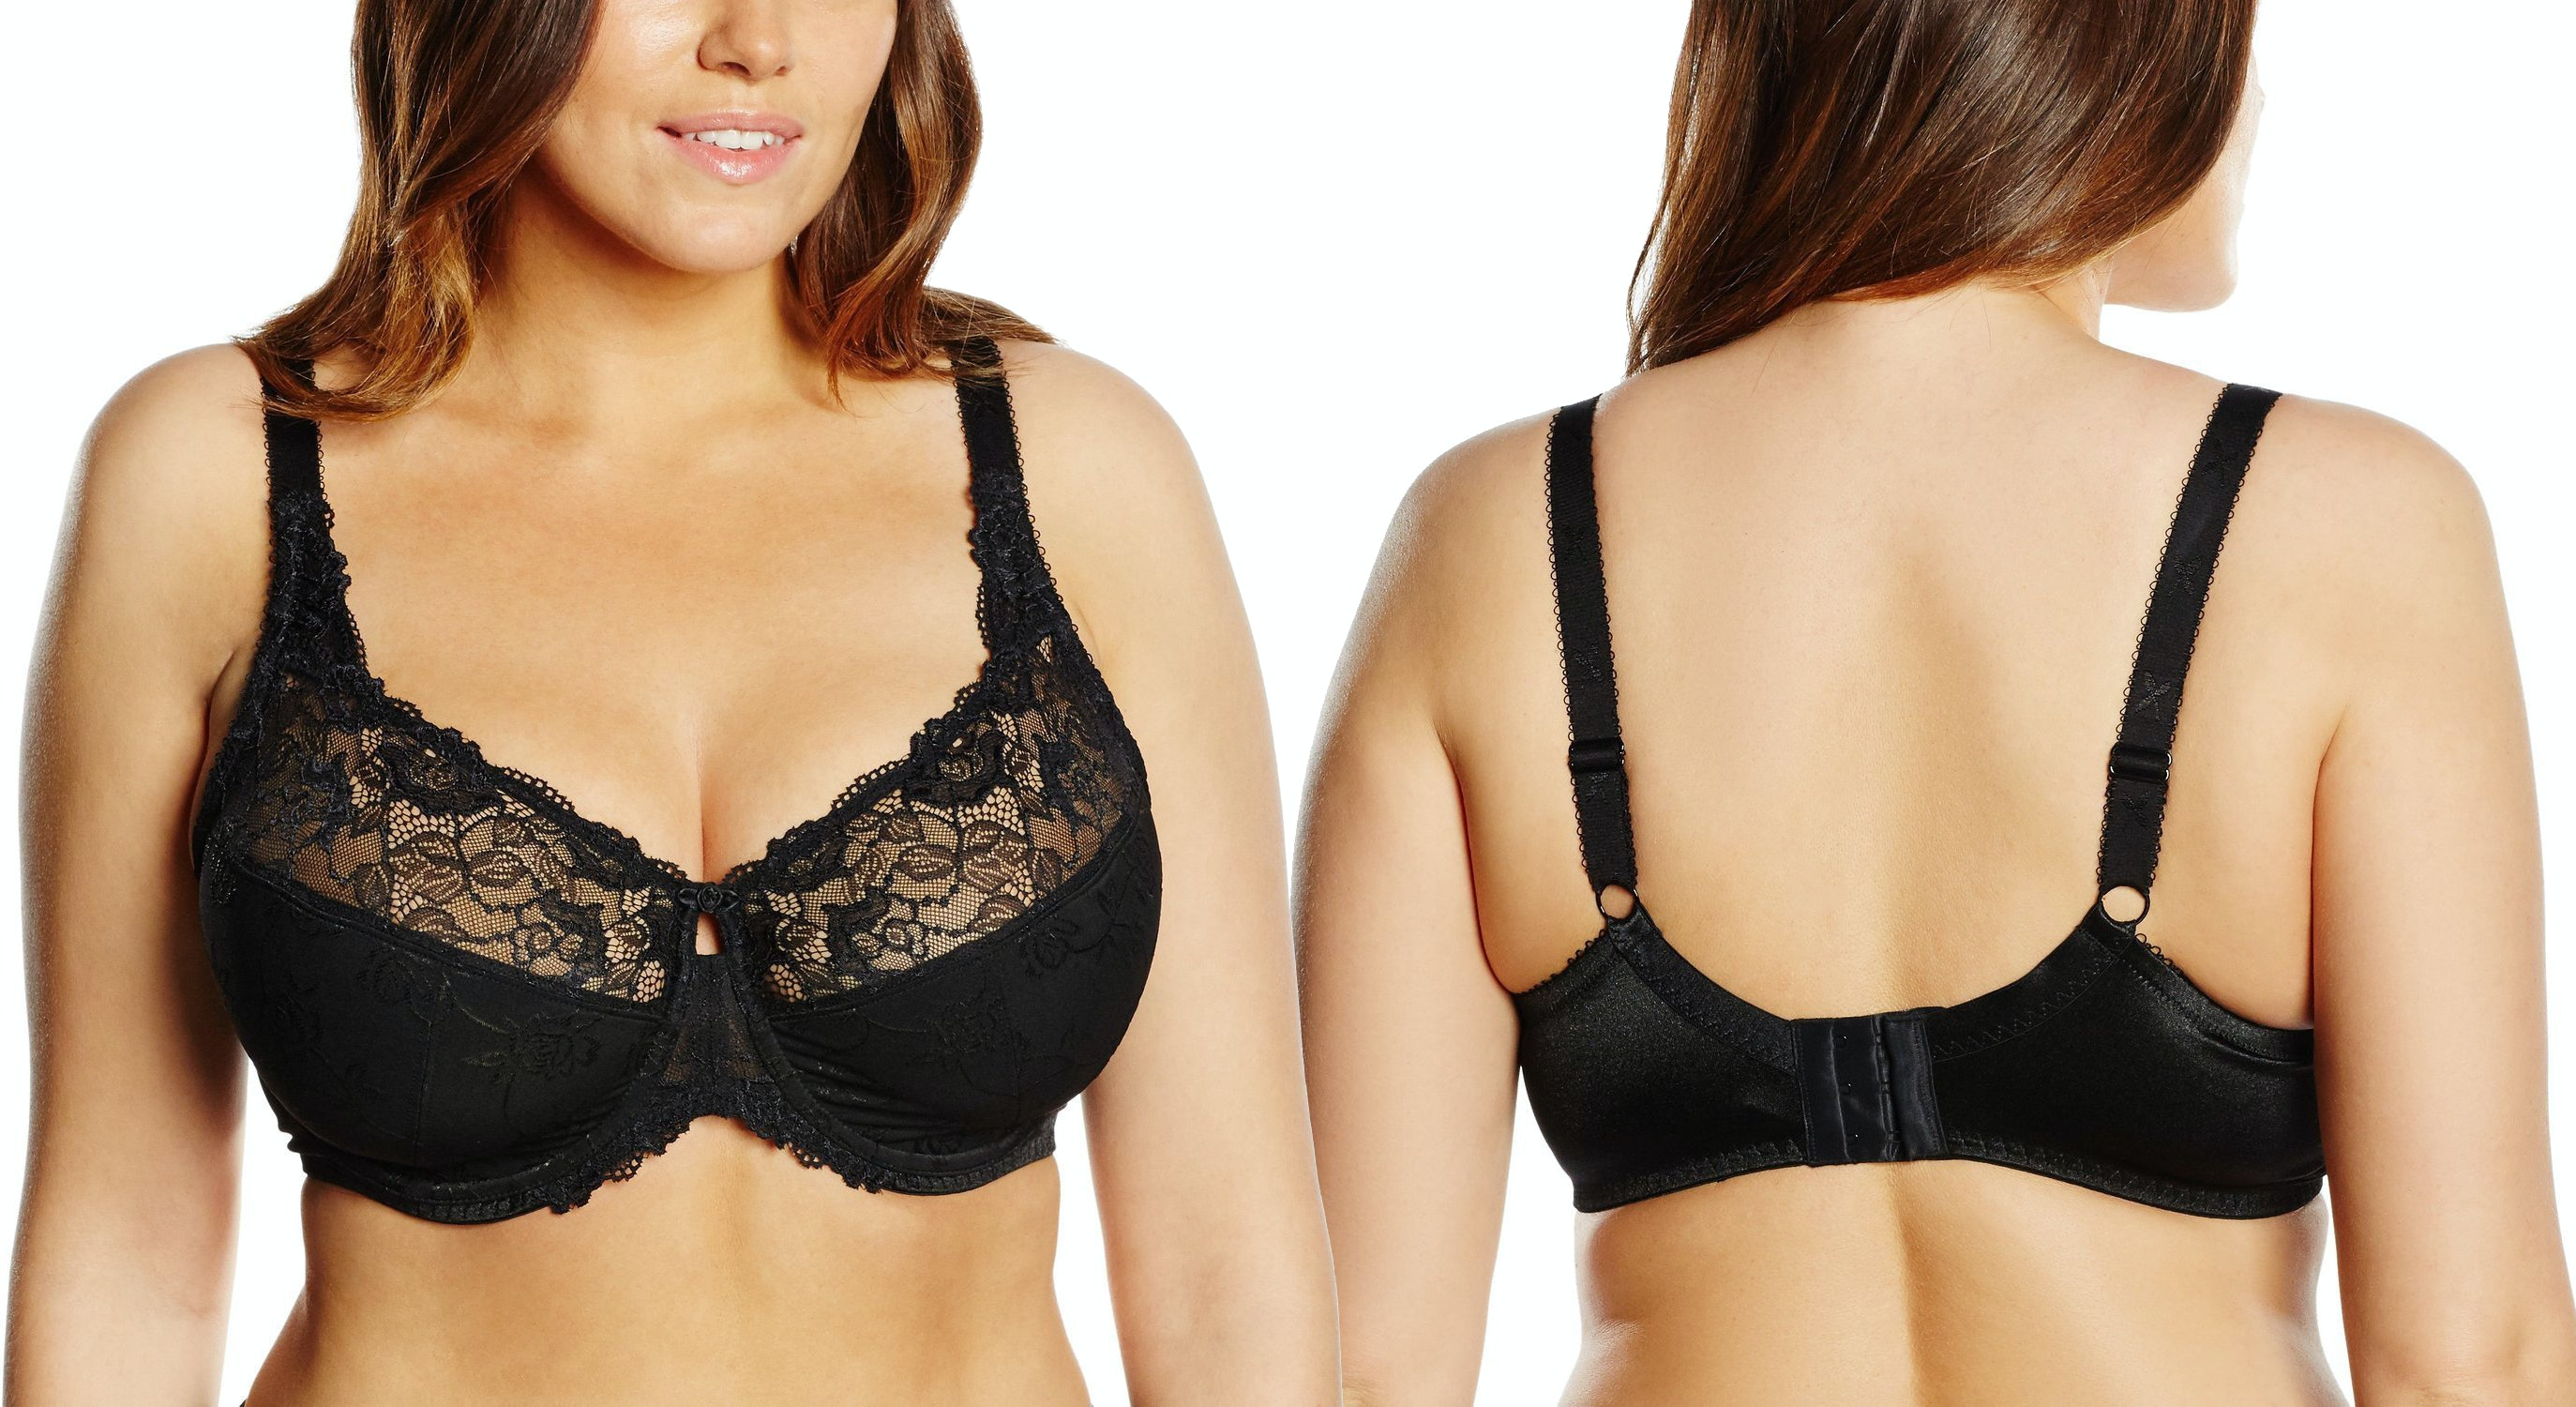 c9c7f6c2f82 The 12 Best Full-Coverage Bras